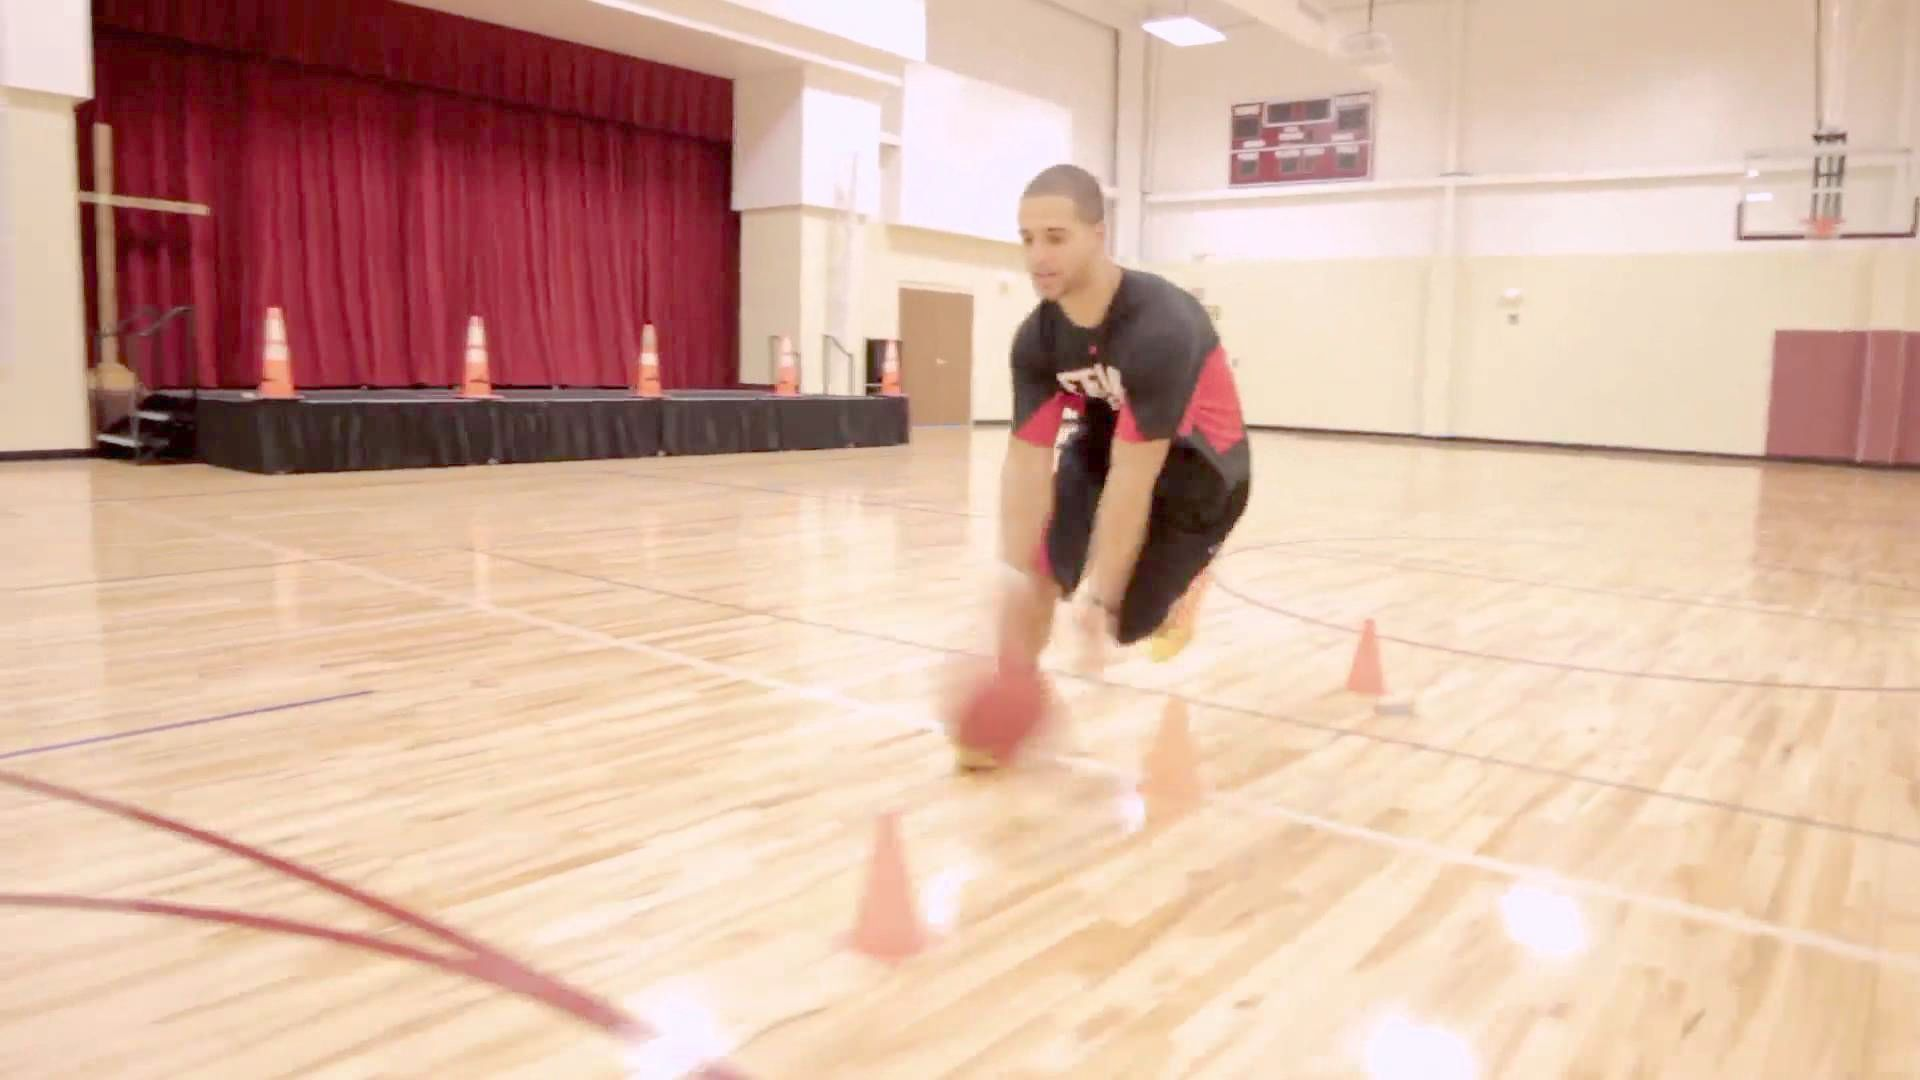 Basketball Court Area From Basketball Legends Unblocked Weebly Into Basketball Shooting Drills For Large Groups Area Basketball Basketball Funny Gif Basketb In 2020